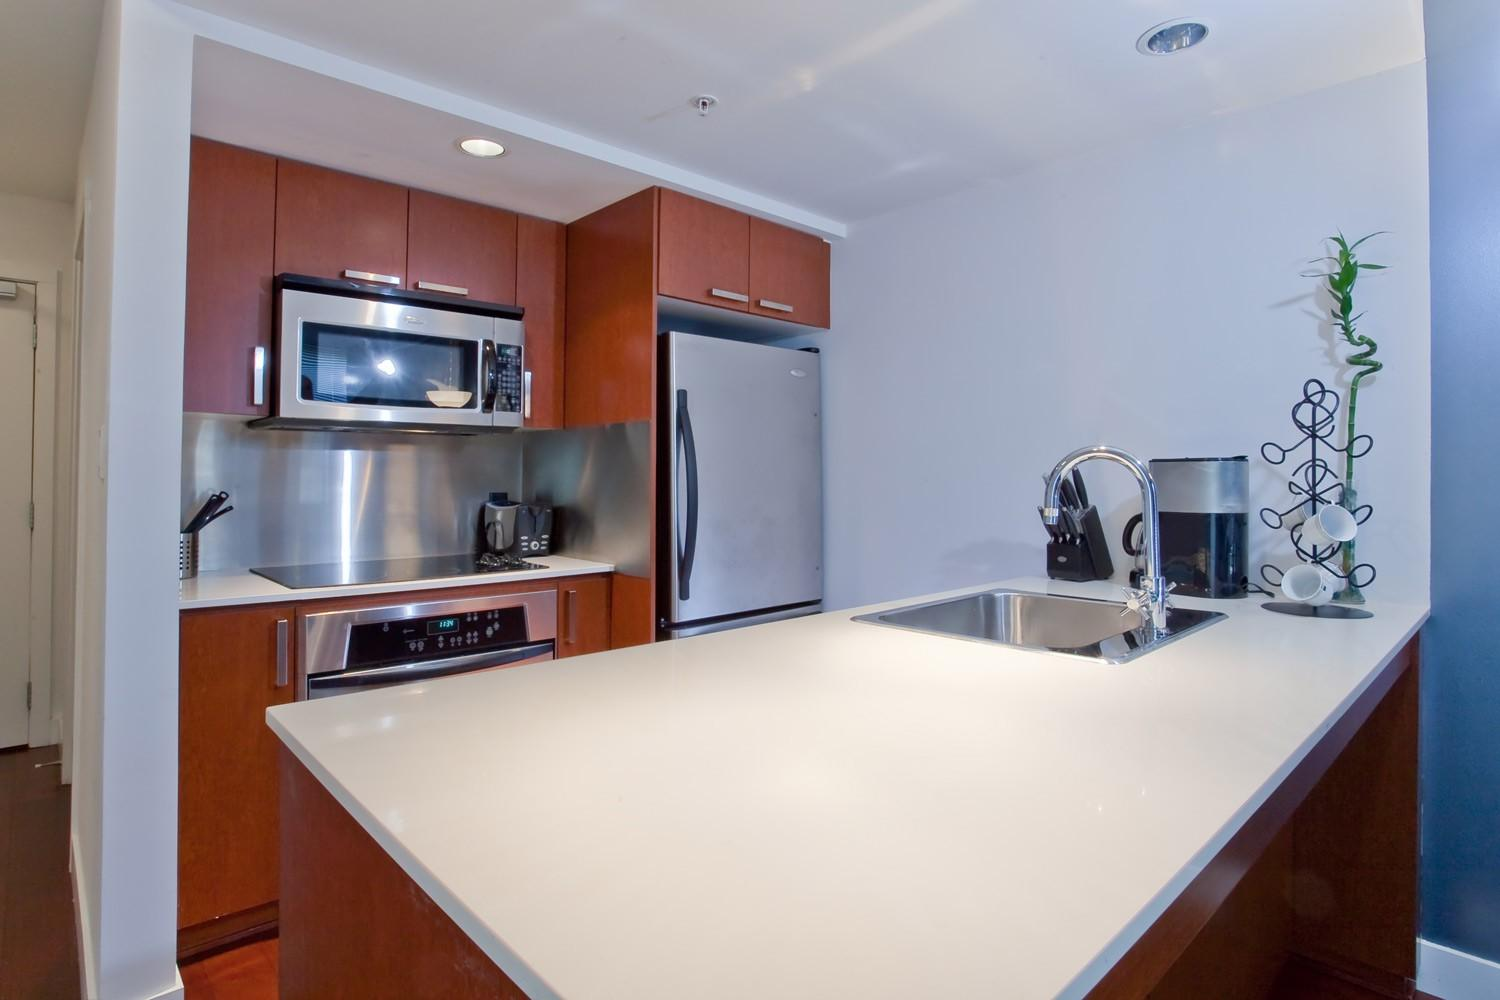 Exclusive 2 bedroom Penthouse at the Elan! Apartments photo #1